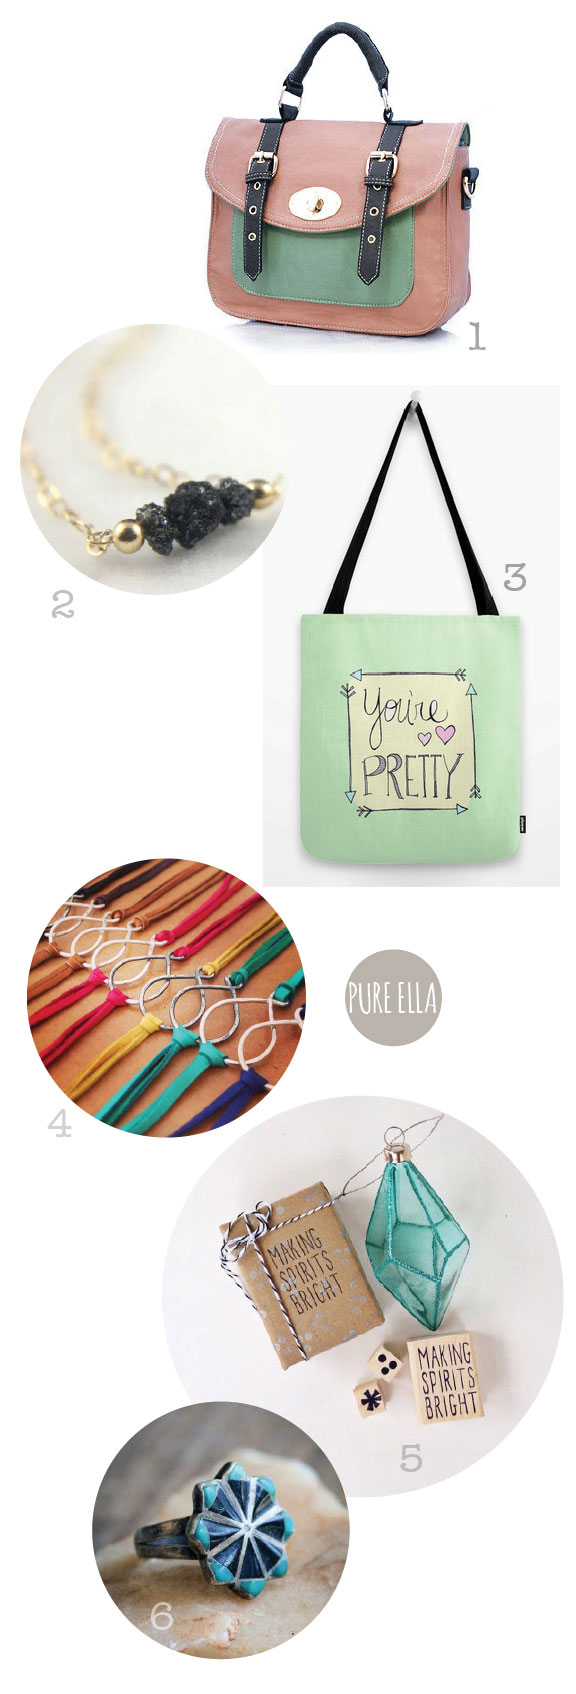 Pure-Ella-Holiday-Gift-Guide3 pretty and bright